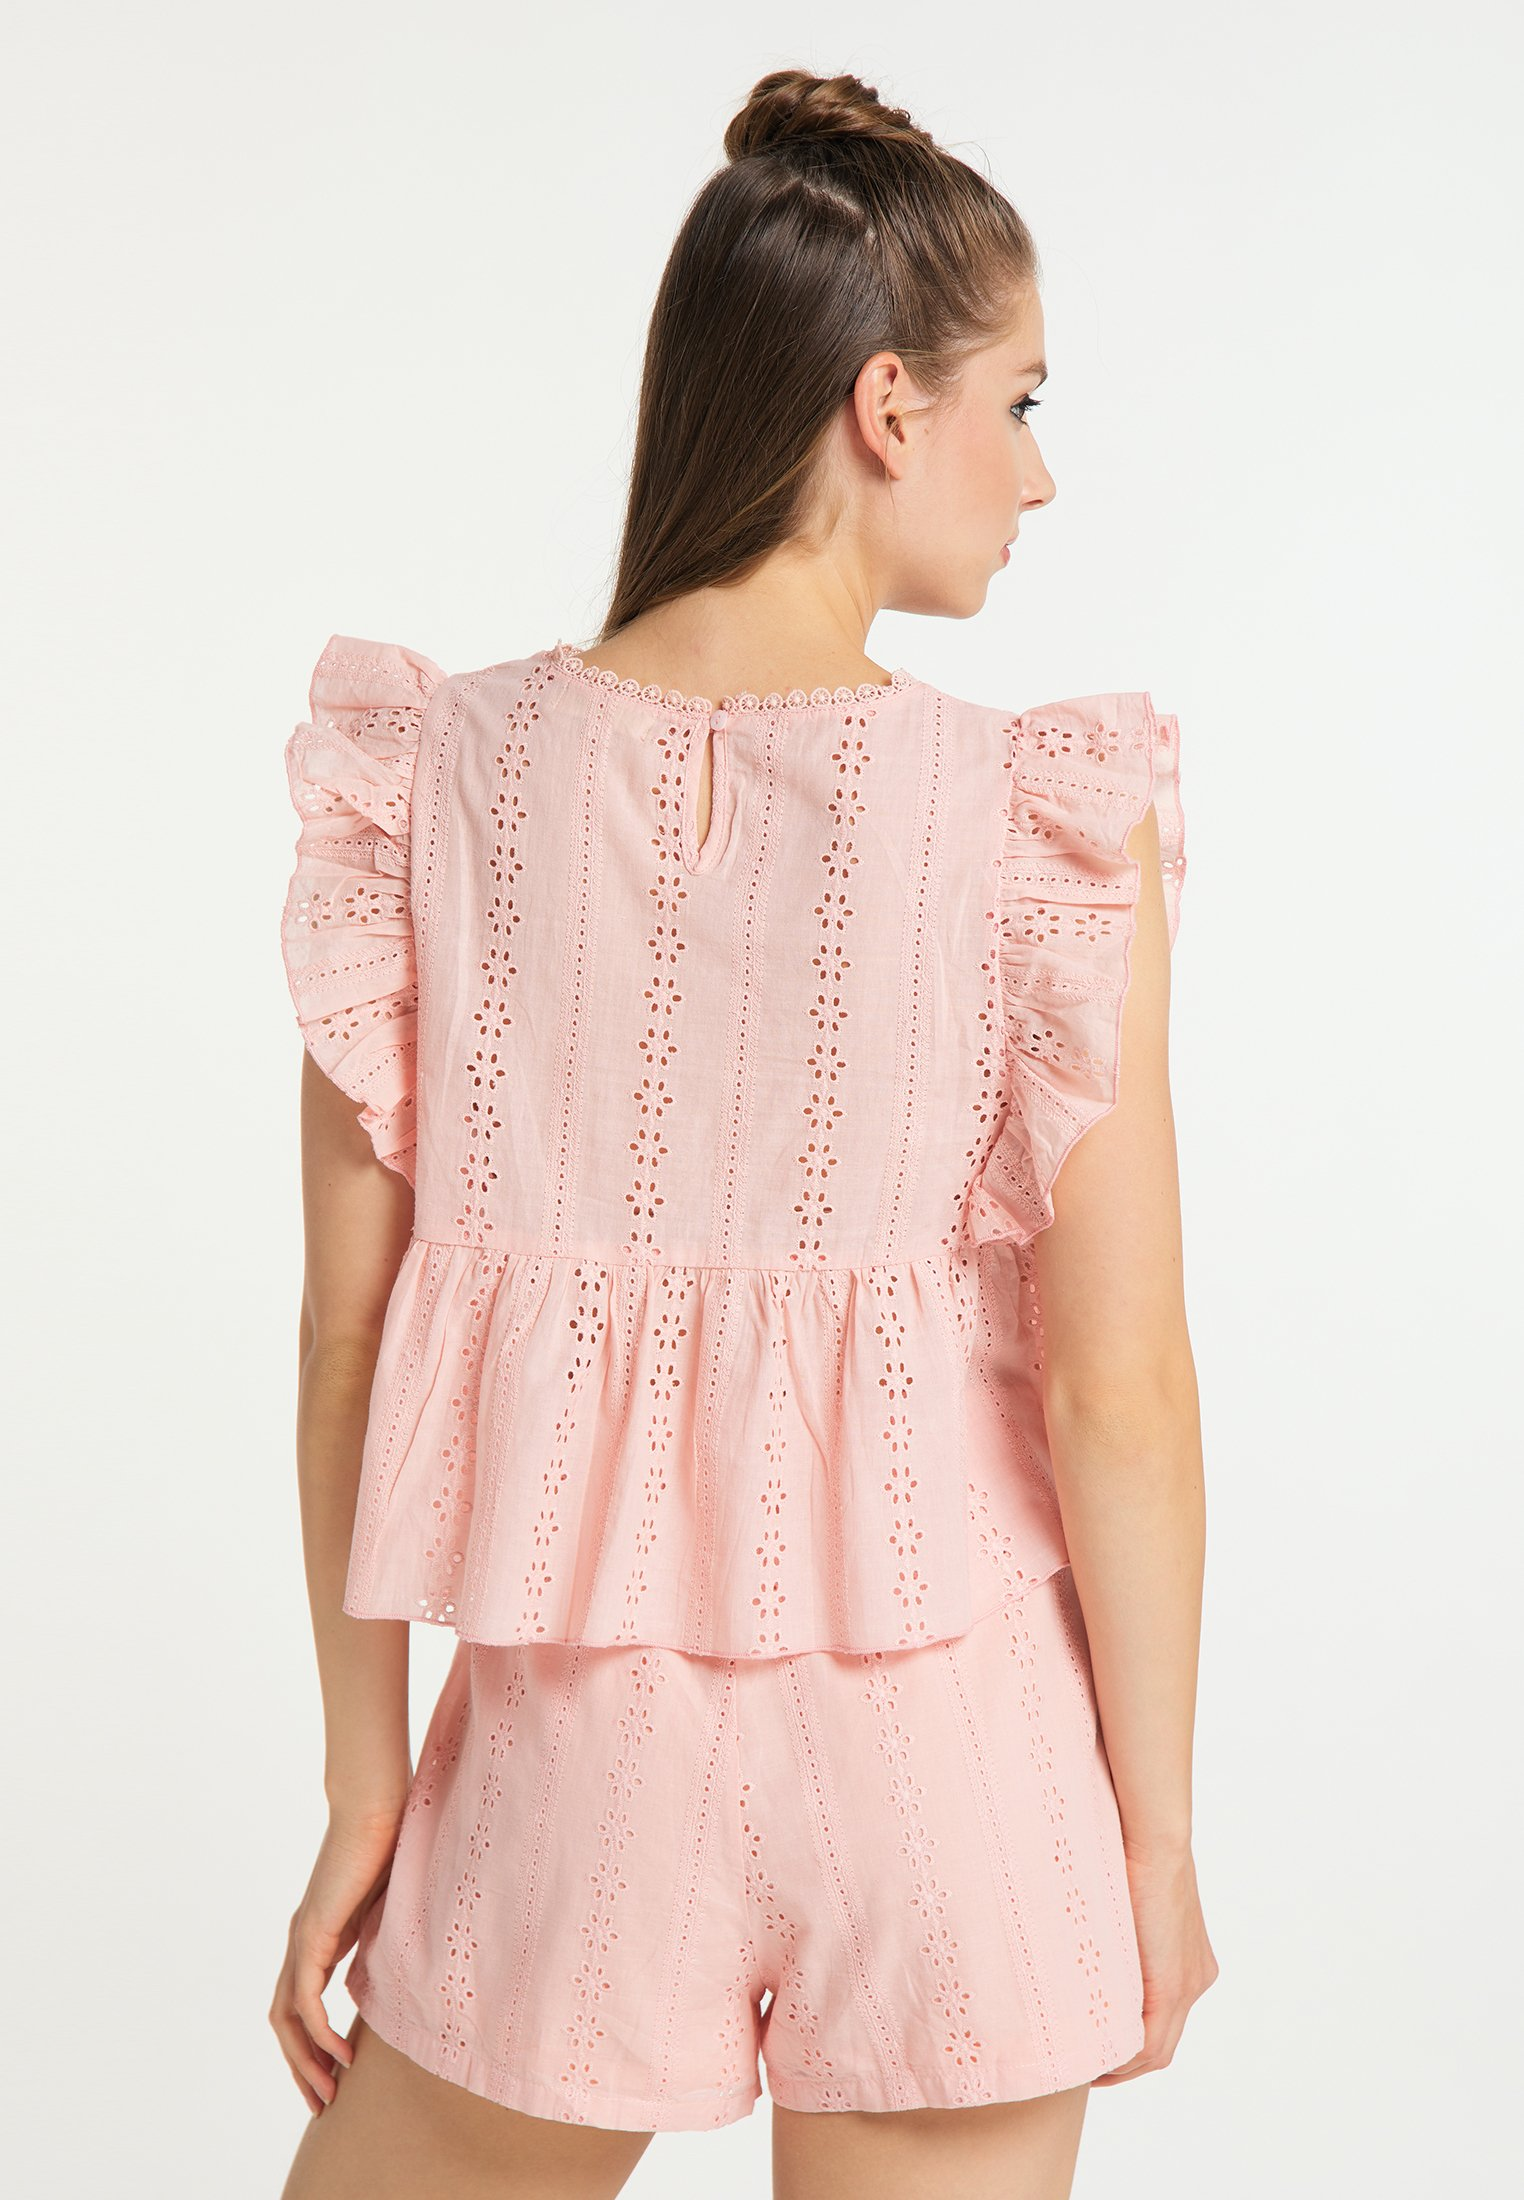 Cheapest Women's Clothing myMo Blouse pink 0zRgZW3iE